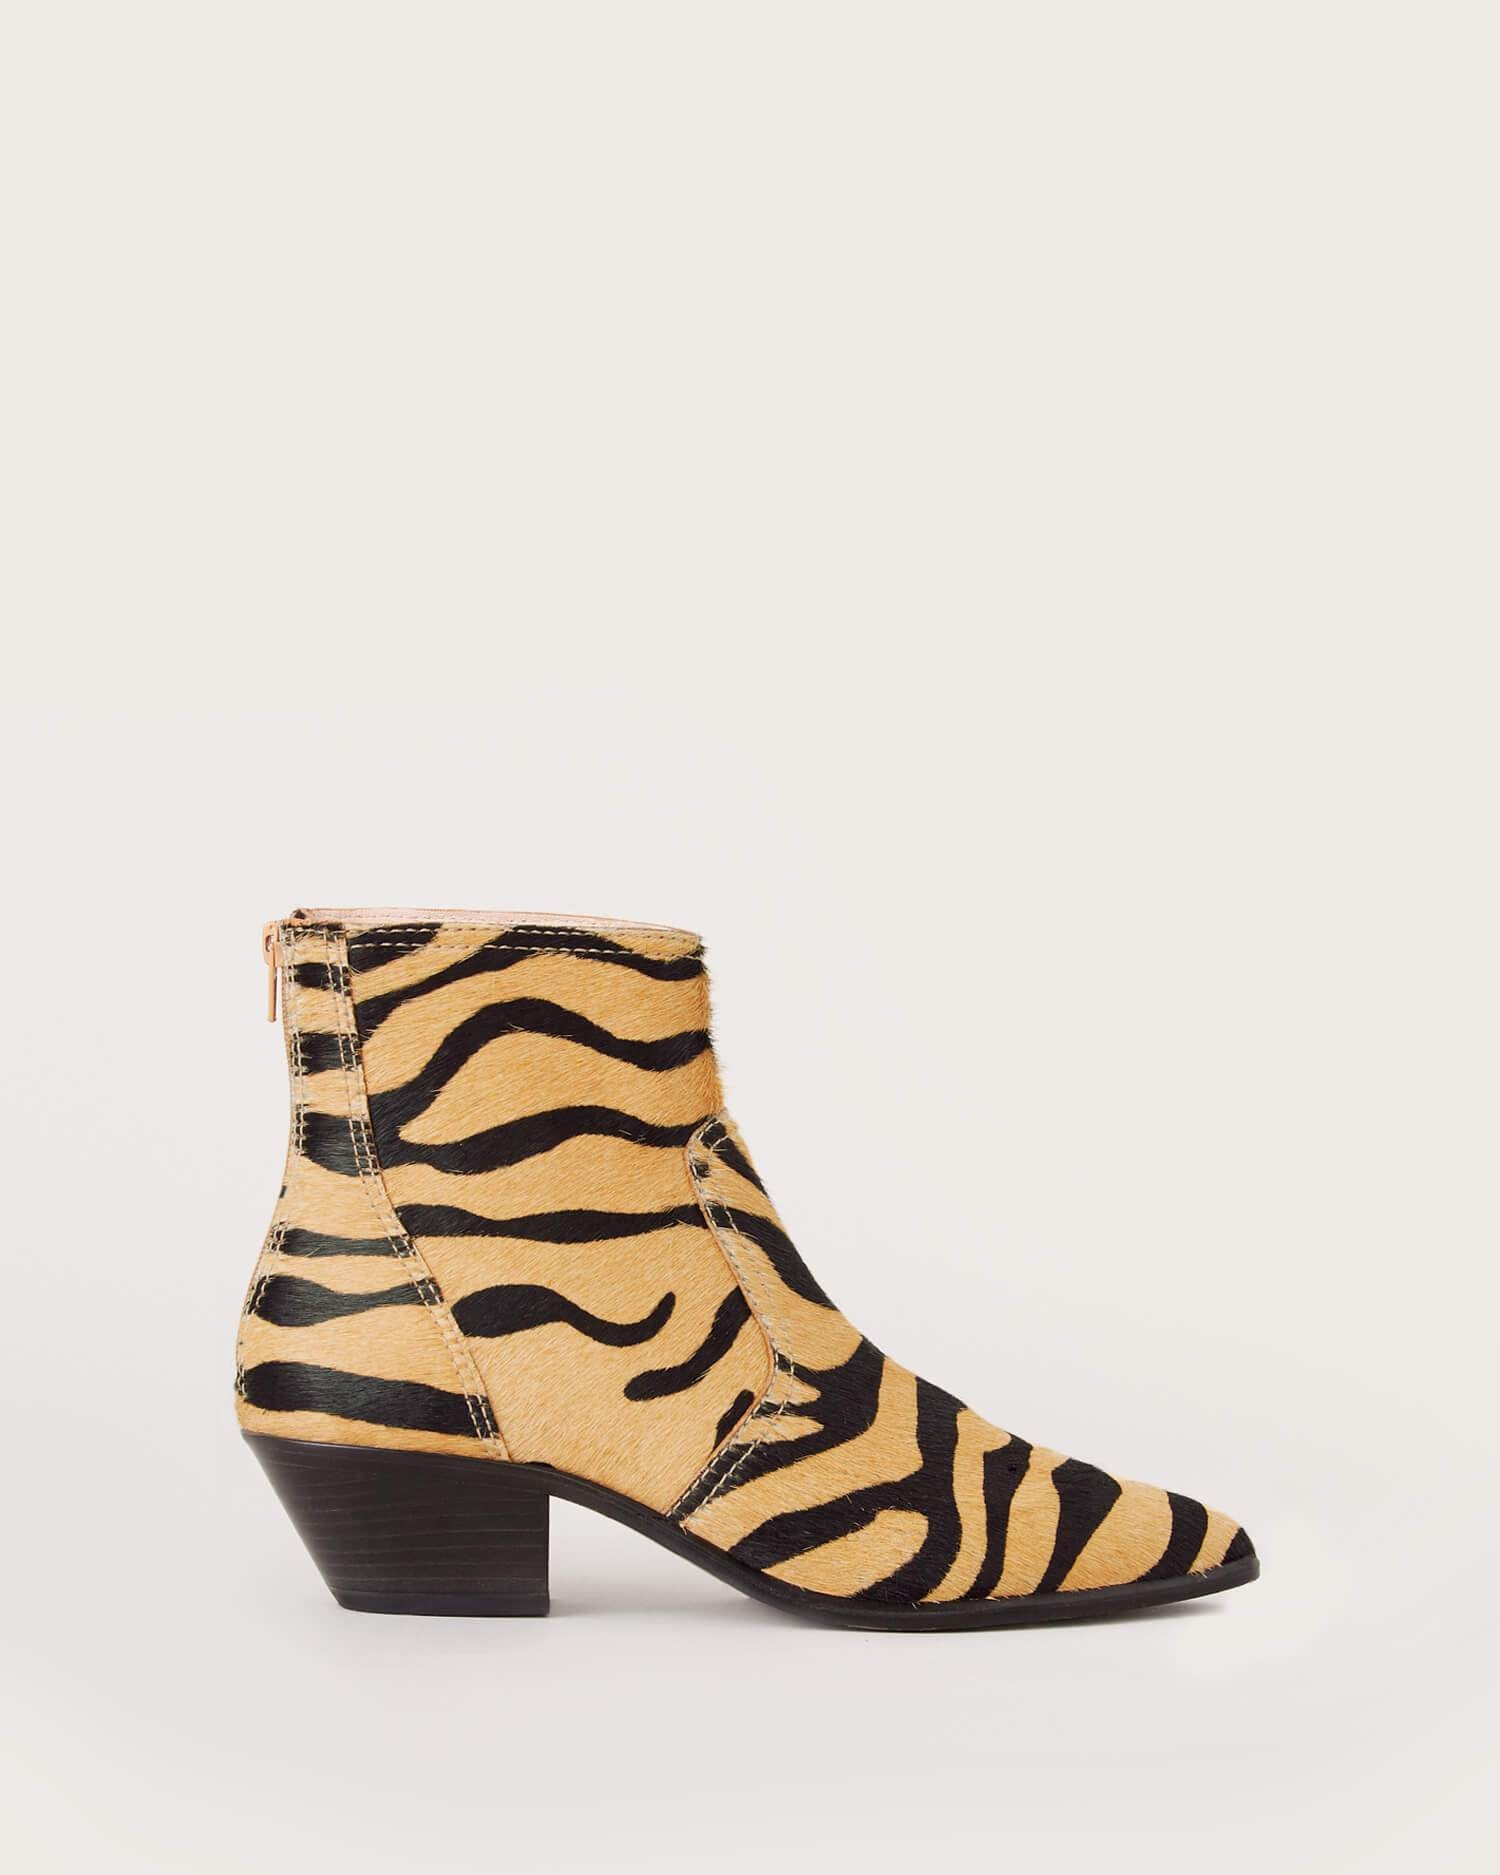 color:Tiger haircalf